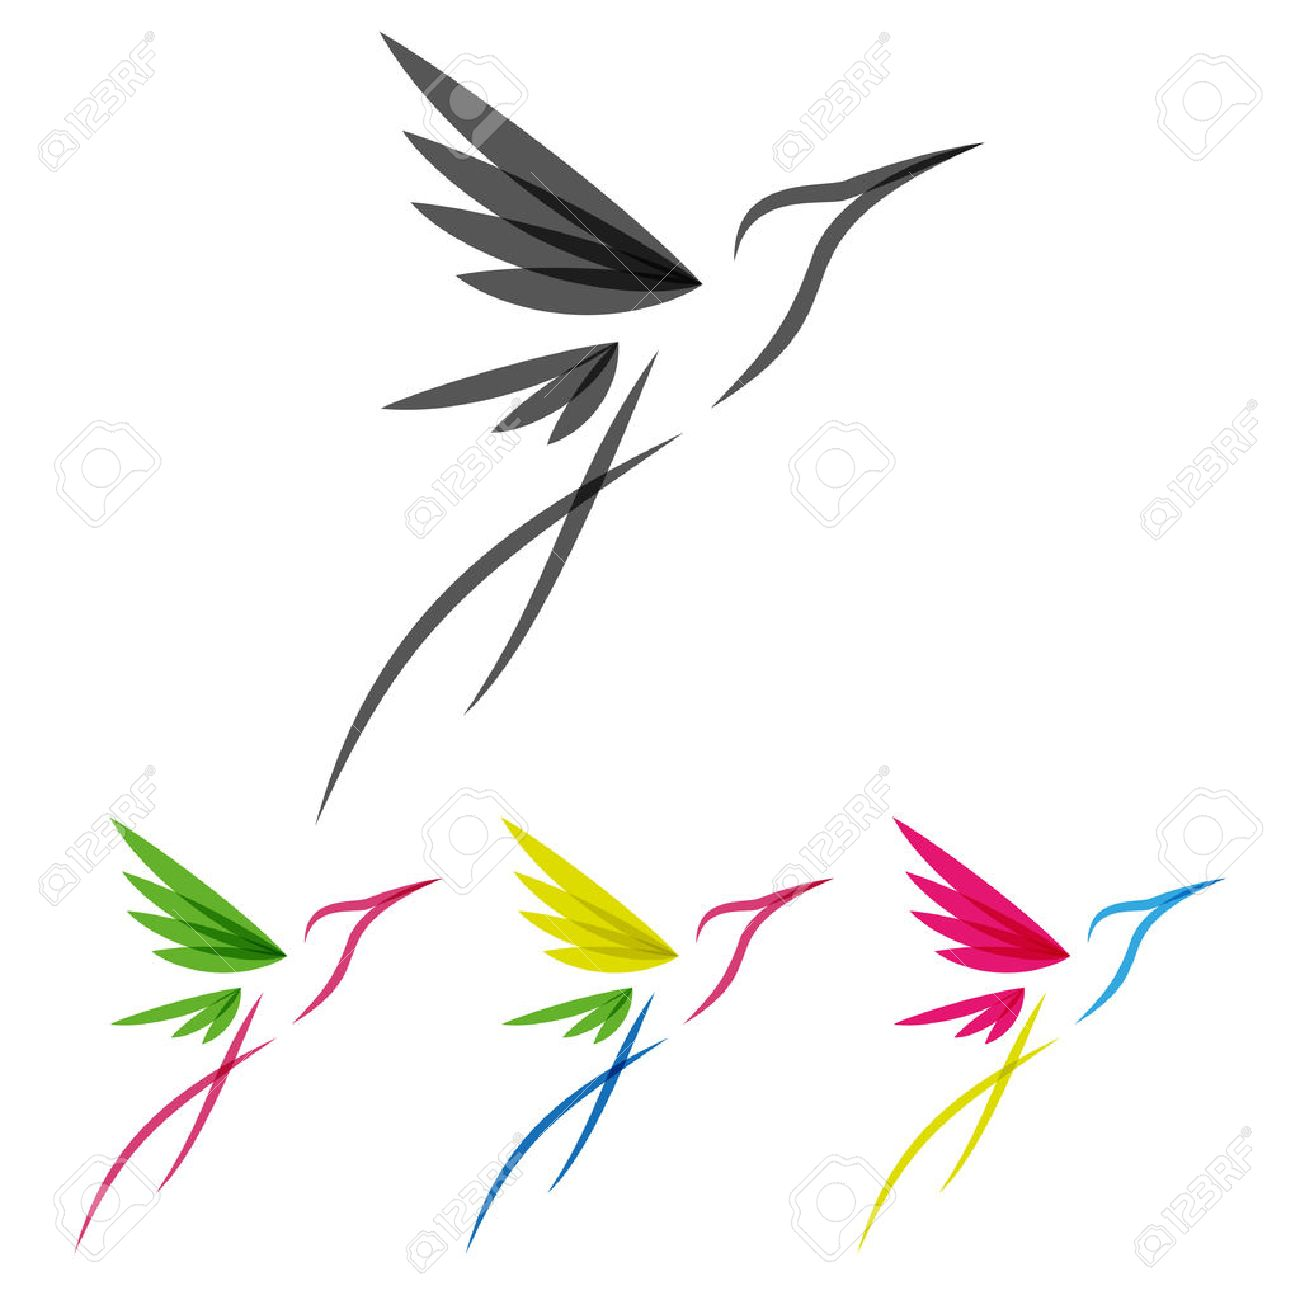 Vector Colored Stylized Tropical Hummingbirds Template for Icon Design - 38081664